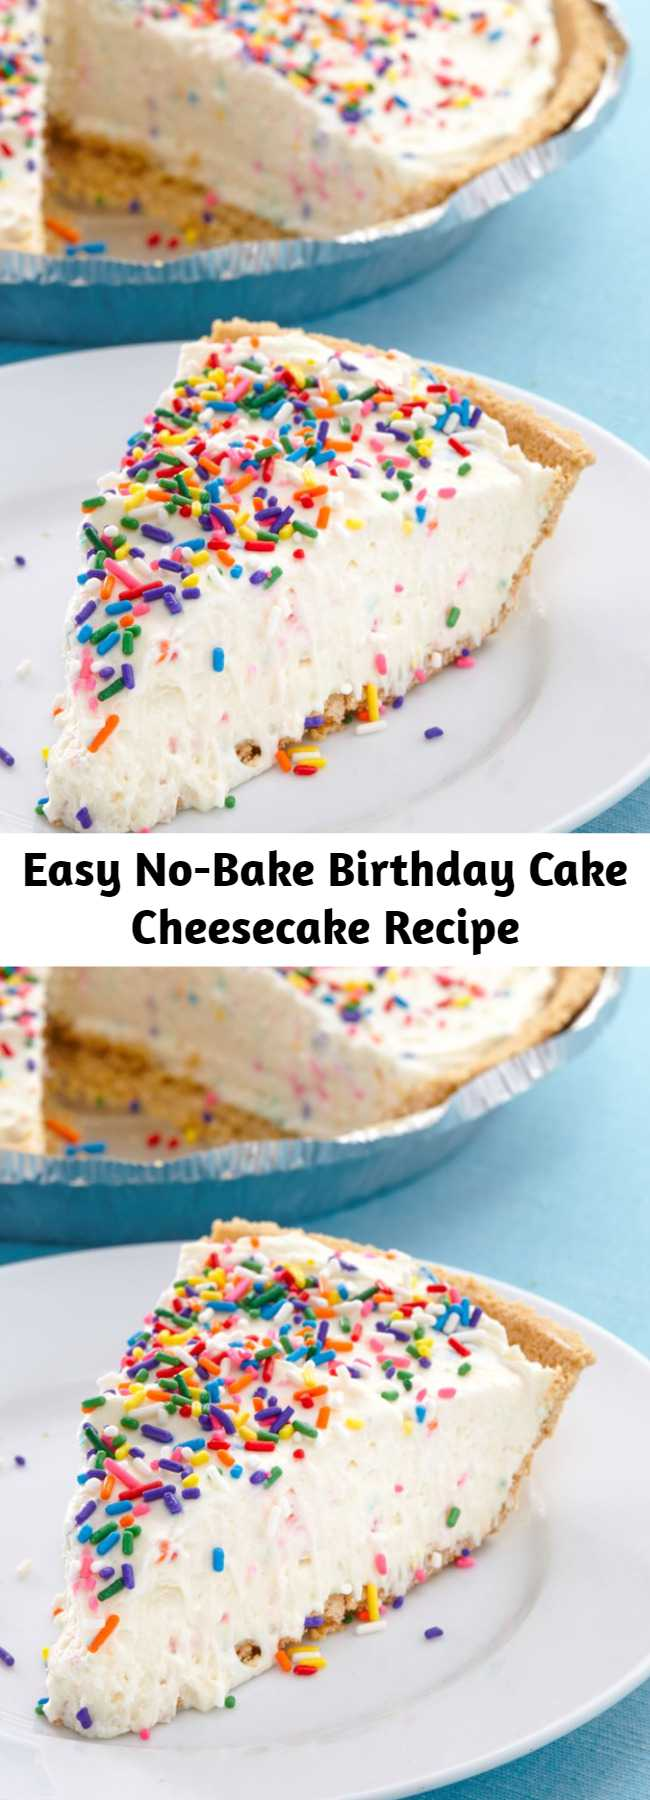 Easy No-Bake Birthday Cake Cheesecake Recipe - The rainbow of colors and flavors you love in birthday cake mix—plus lots of sprinkles. You'll fall in love with these no-bake birthday cake cheesecake. #easy #recipe #nobake #nobakerecipes #birthdaycake #birthdayrecipes #cheesecake #dessert #dessertrecipes #funfetti